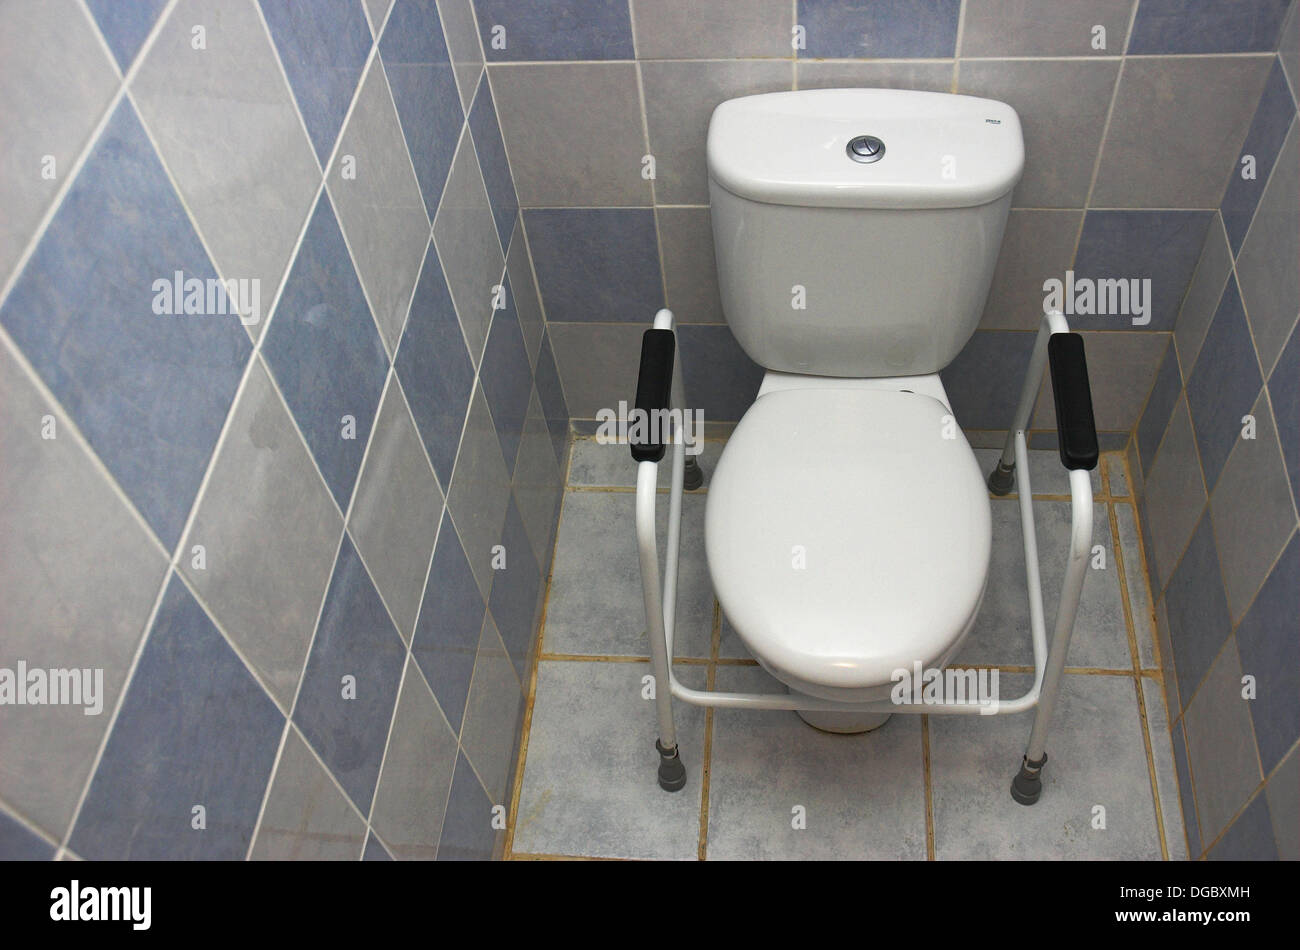 Disability Aid Wc Toilet Stock Photos & Disability Aid Wc Toilet ...